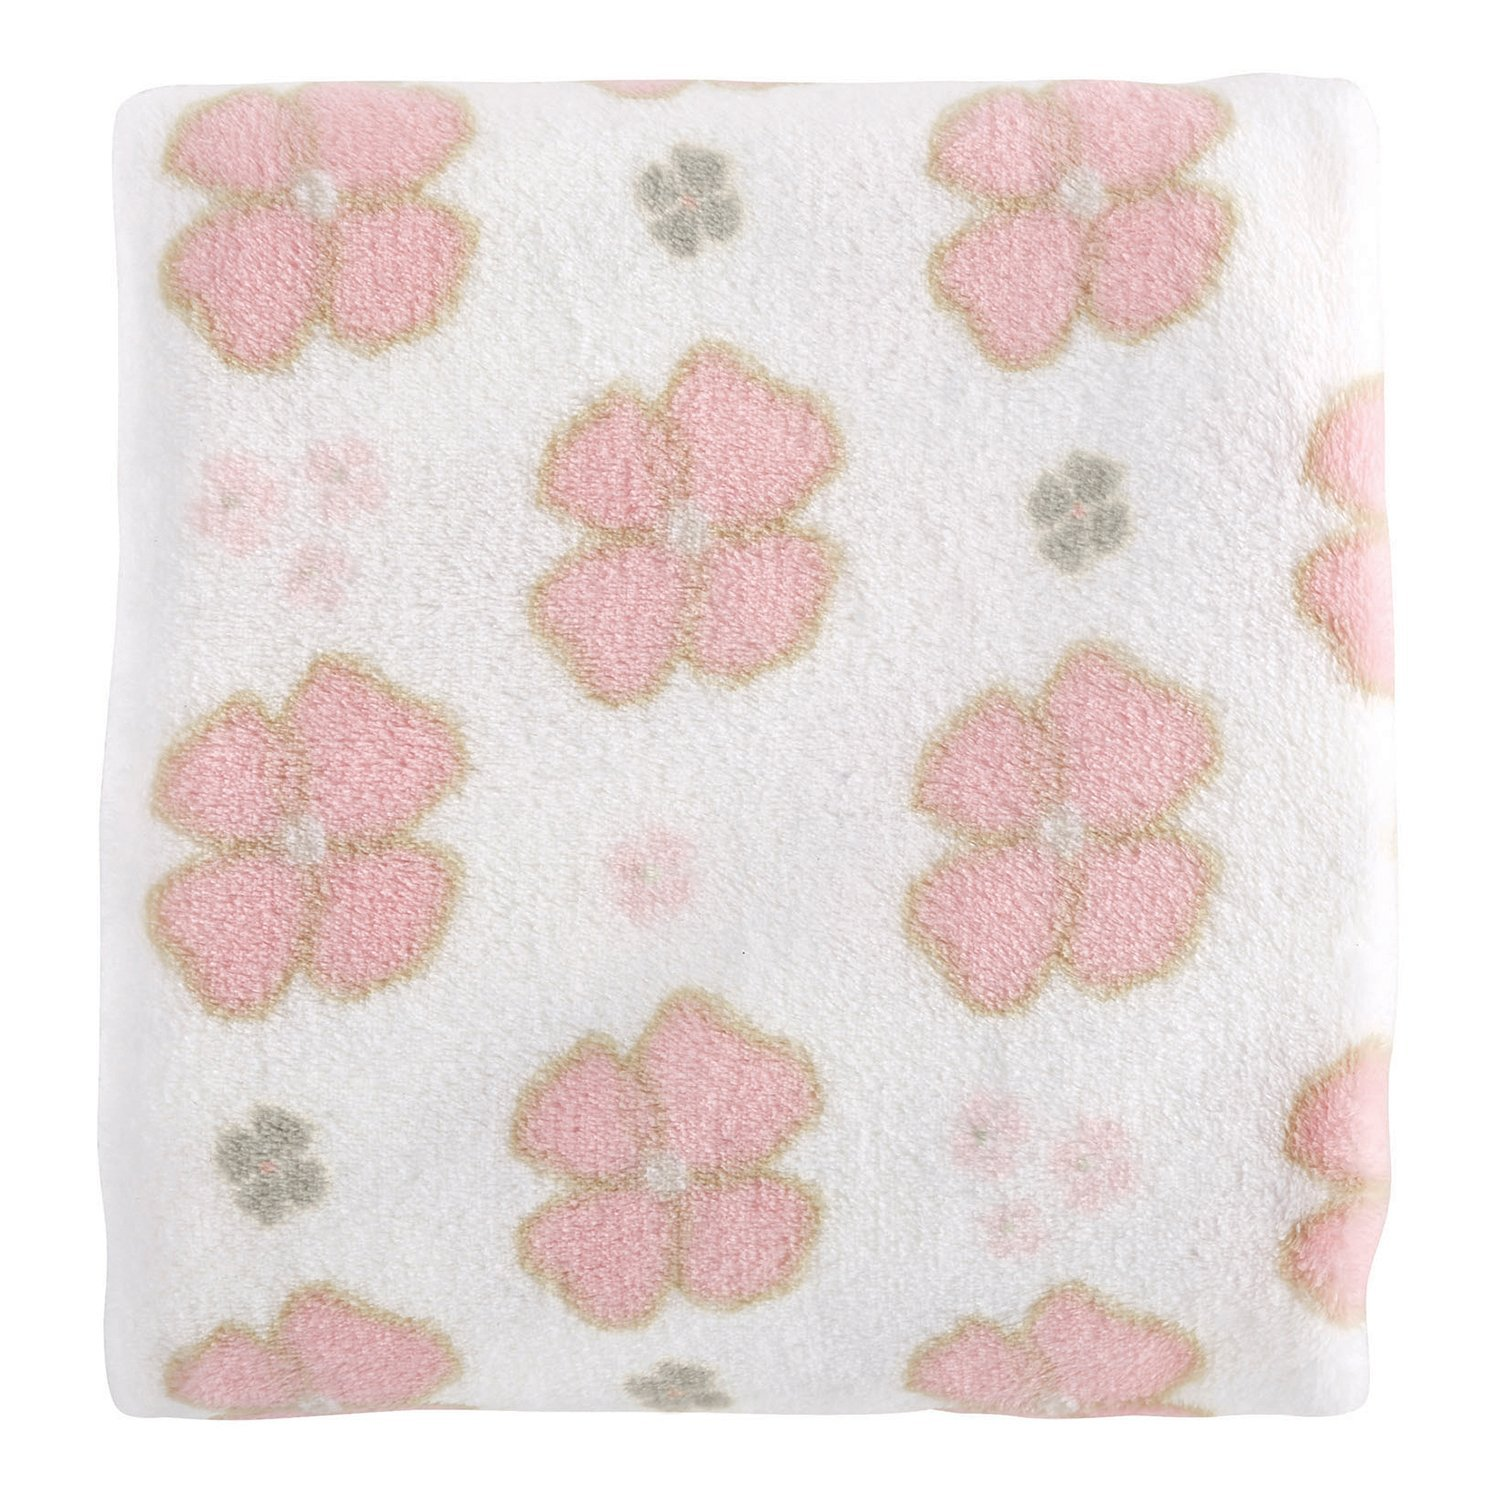 Stephan Baby Playful Posies Pink and Gray Floral Snuggle Fleece Crib Blanket